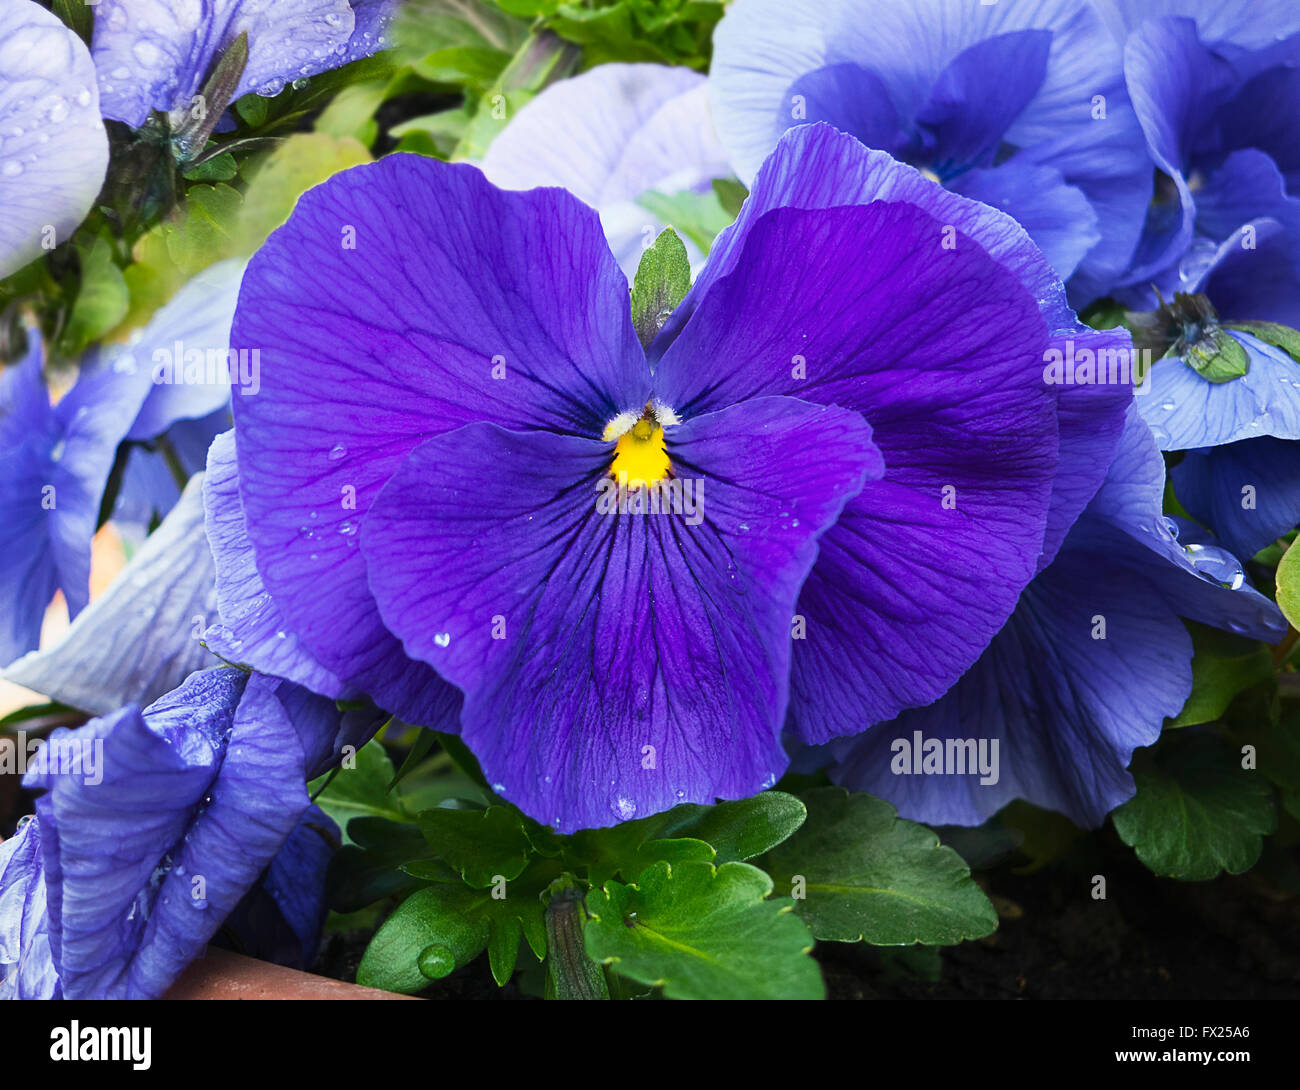 Blue and violet pansies flowers in garden with dew drops on petals. Closeup. View from top. Slightly blurred background. Stock Photo